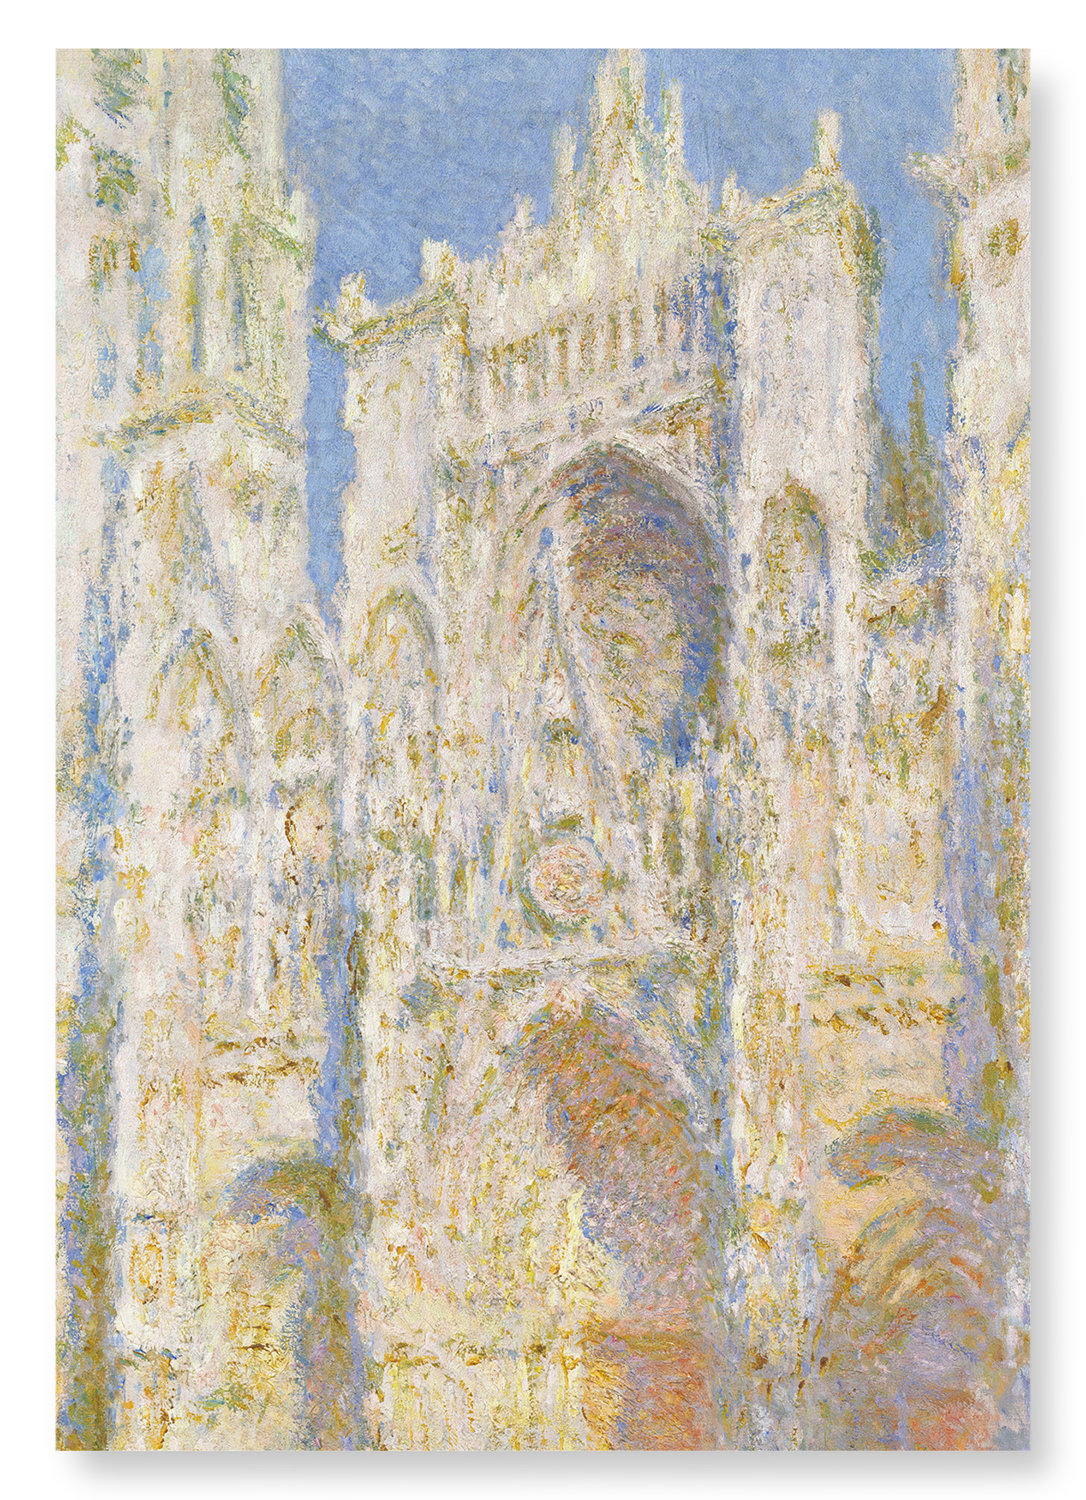 ROUEN CATHEDRAL WEST FAÇADE BY MONET: 2xPrints